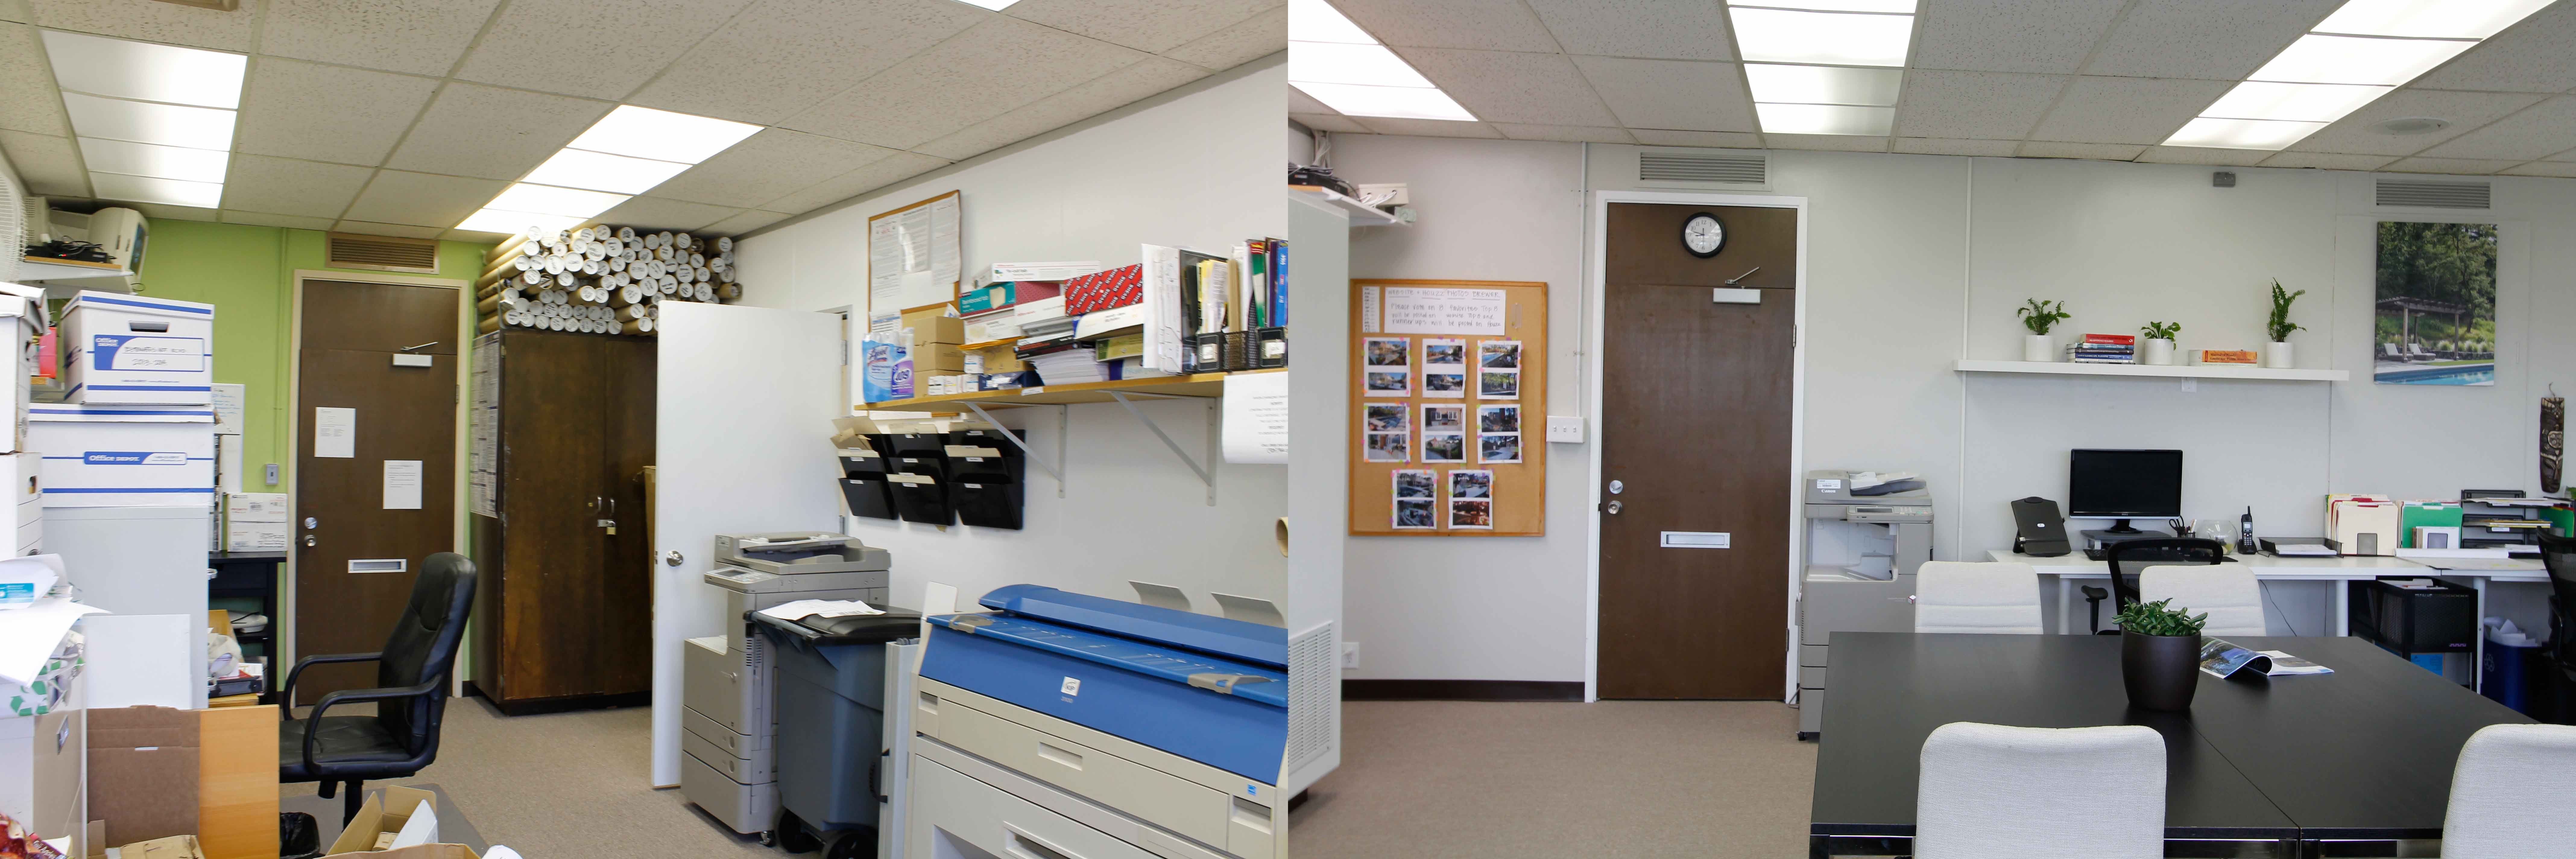 Before and After of the Office Remodel